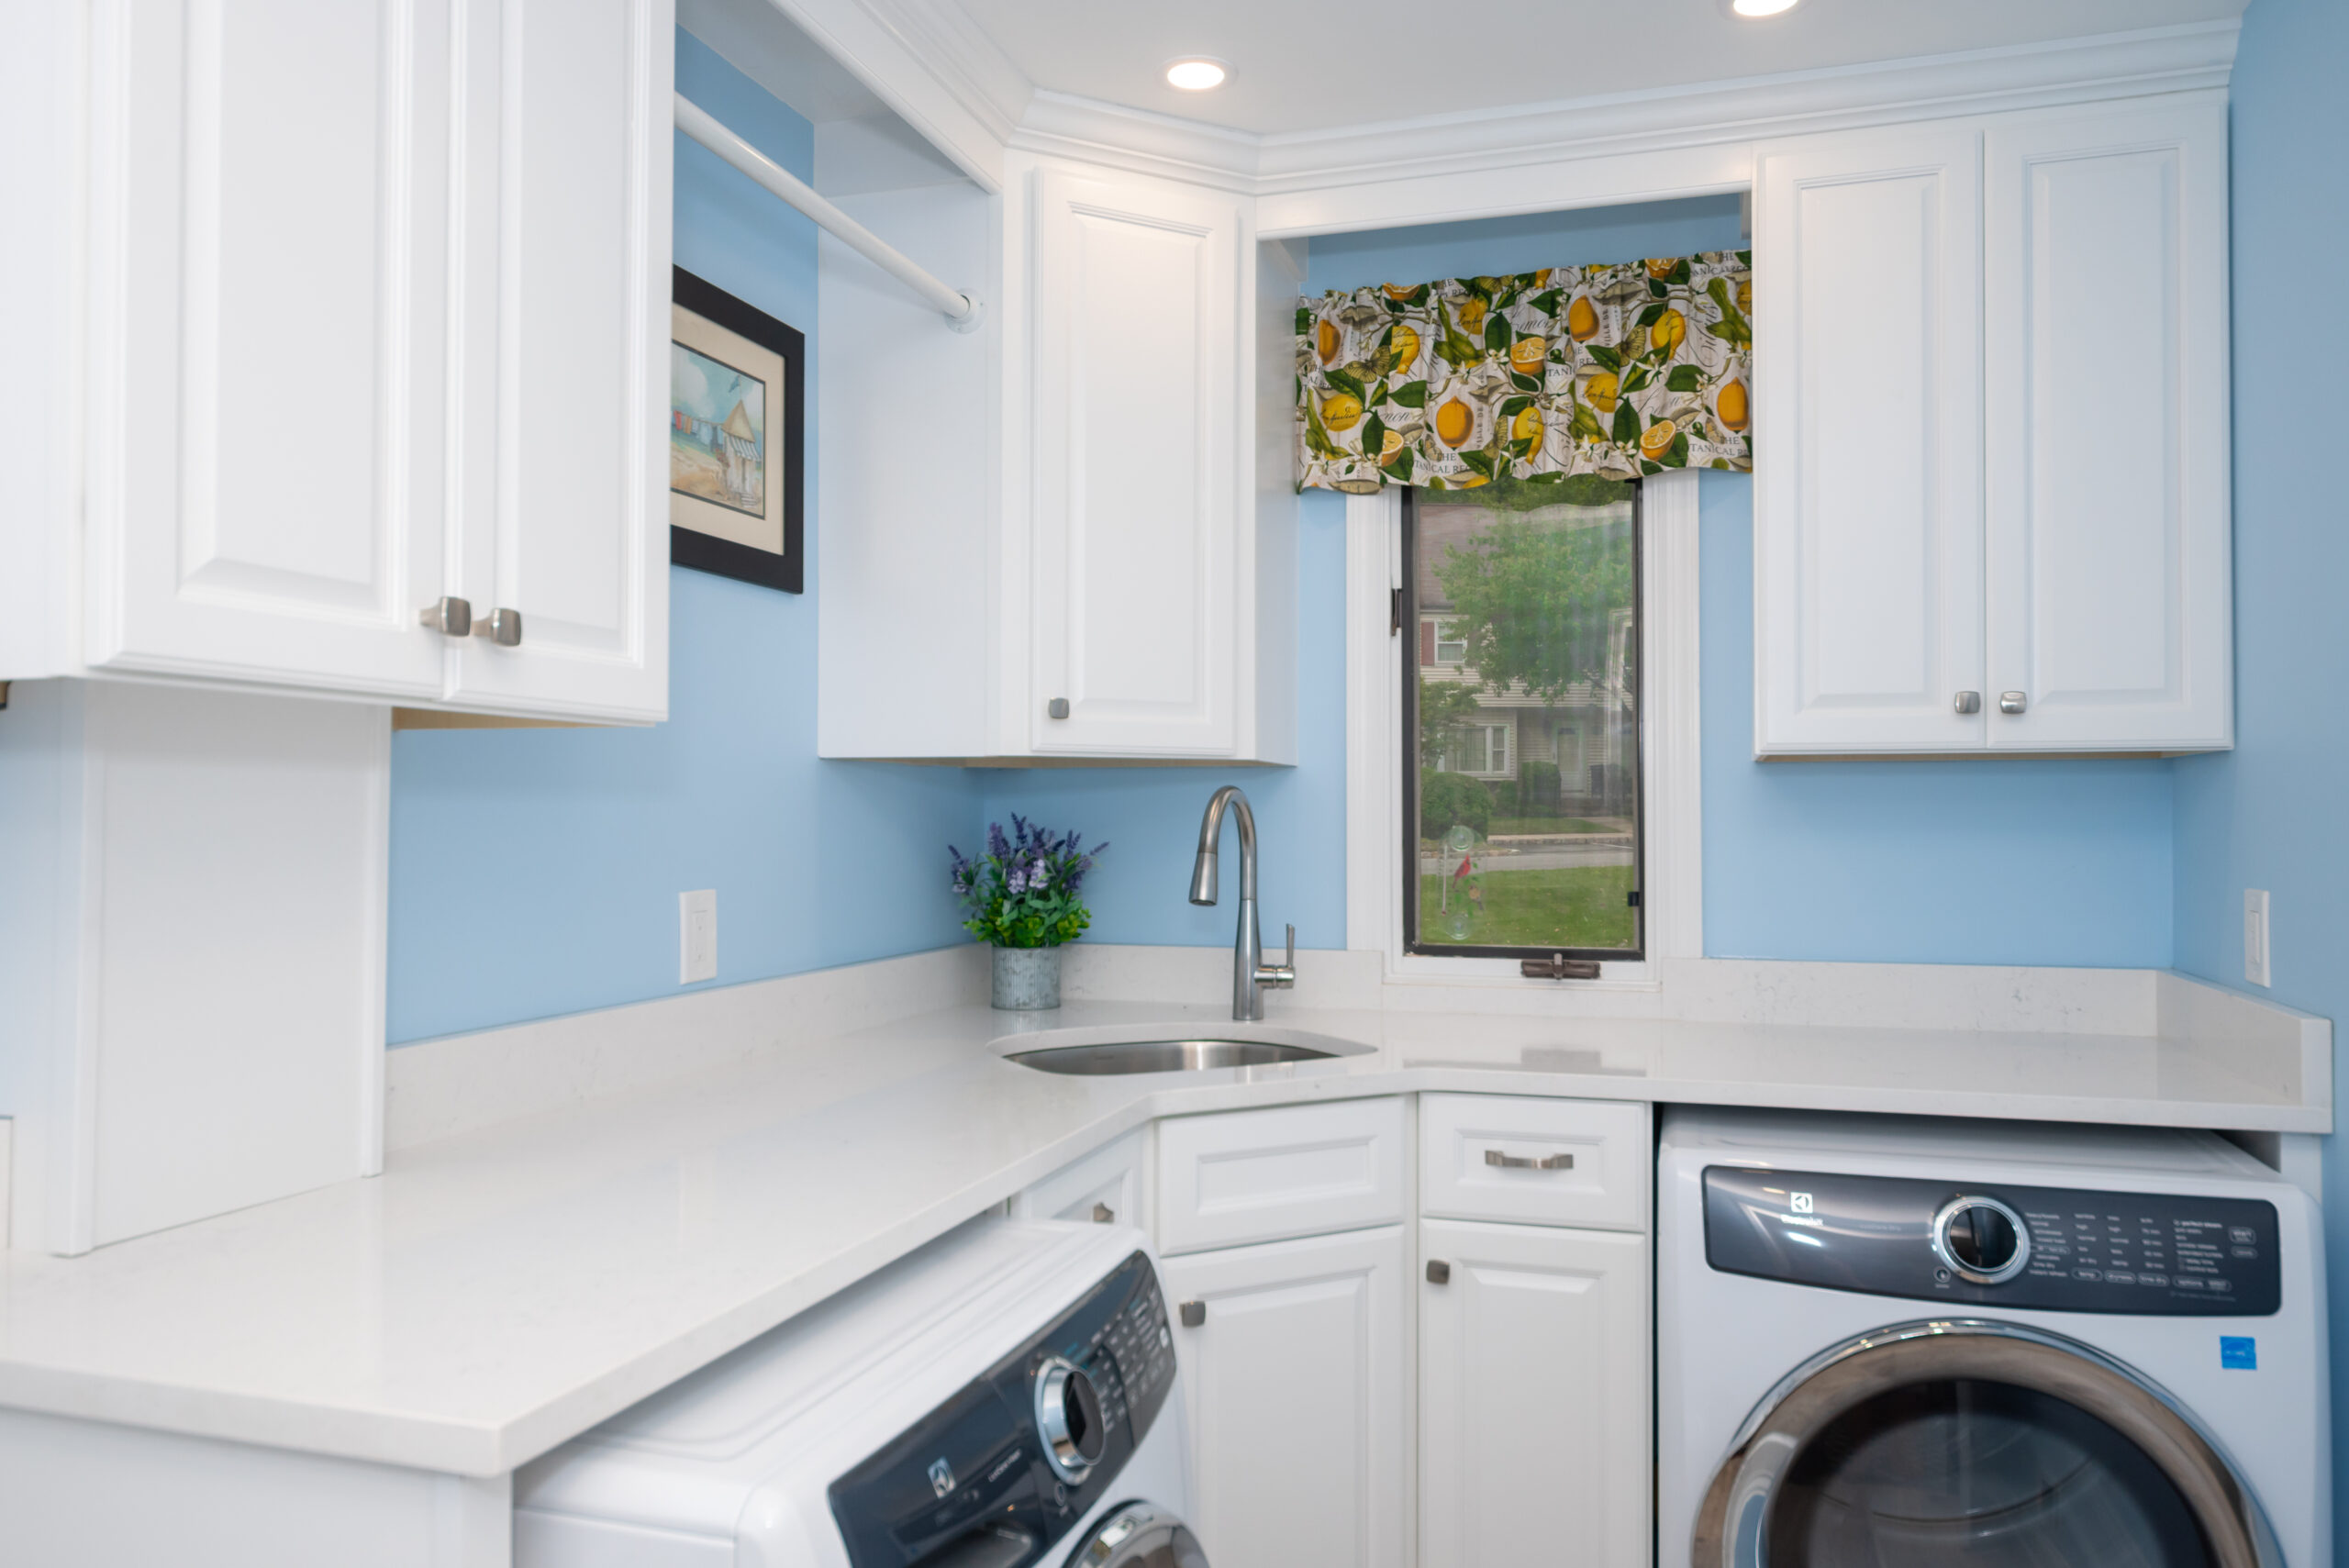 laundry room with appliances and sink